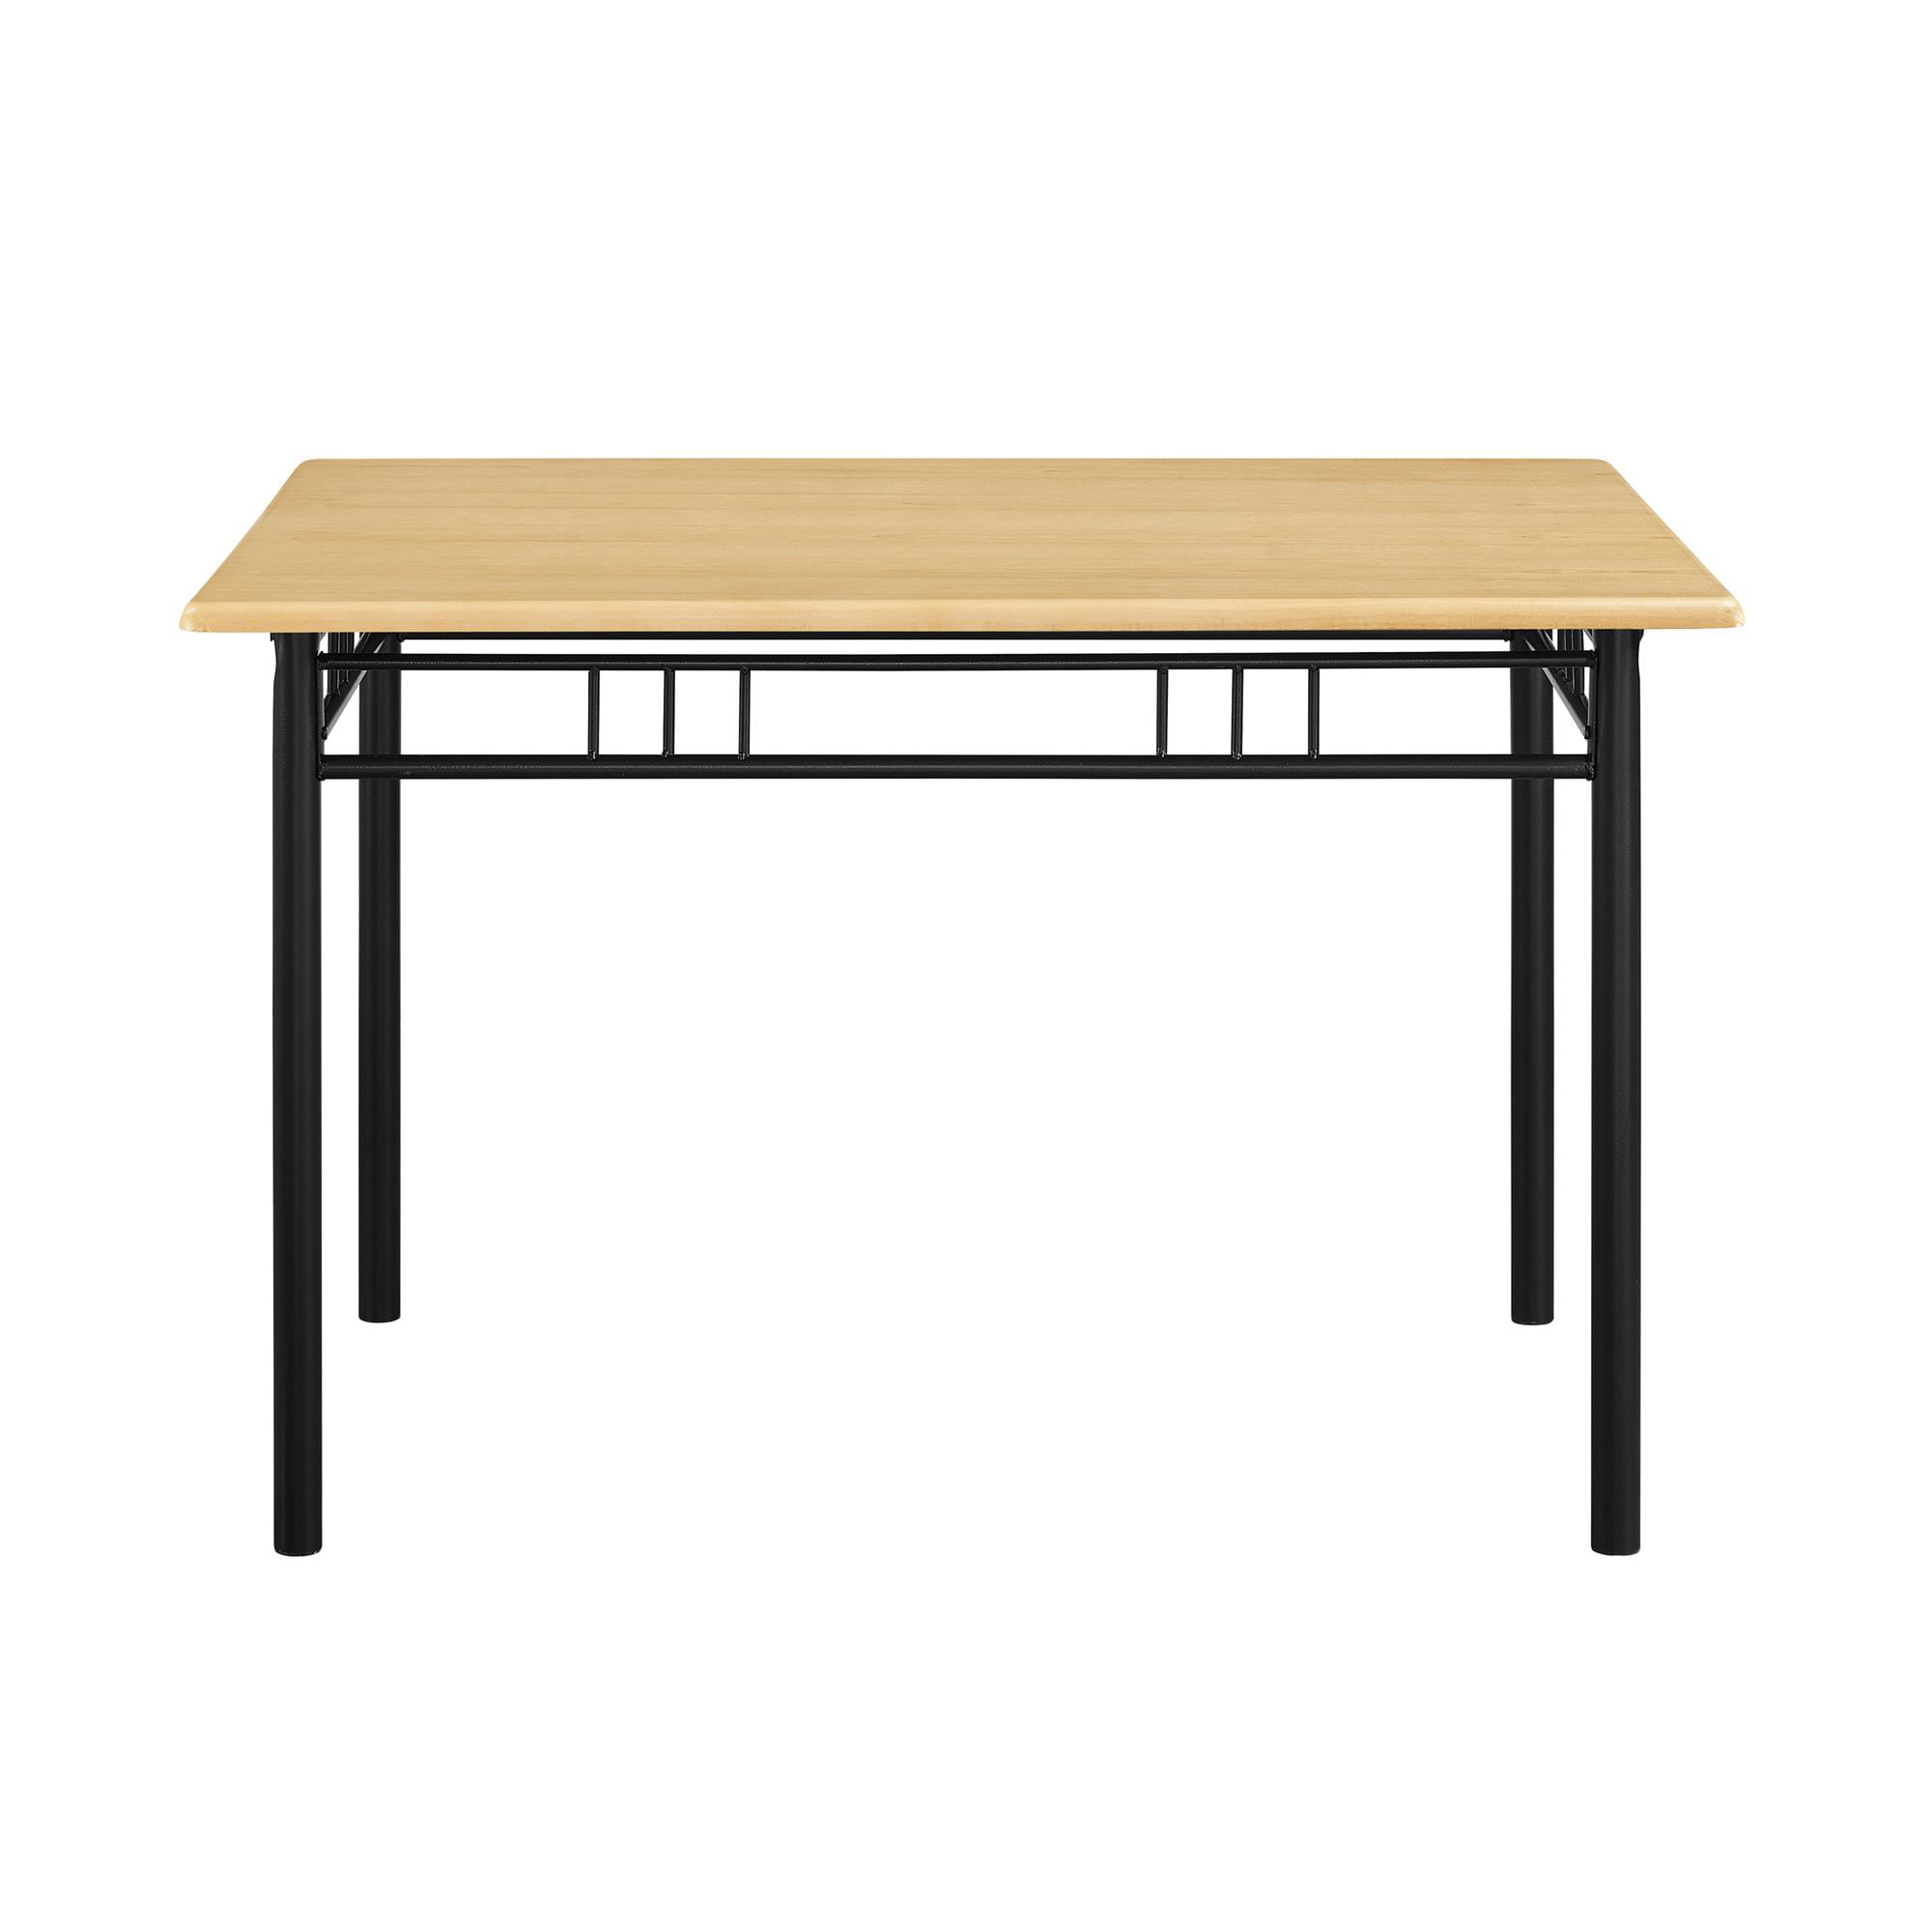 console iron black hall base and for your steel skinny desk table clerks bernhardt marble modern wrought with sofa entrance outdoor glass hooker metal top amazing